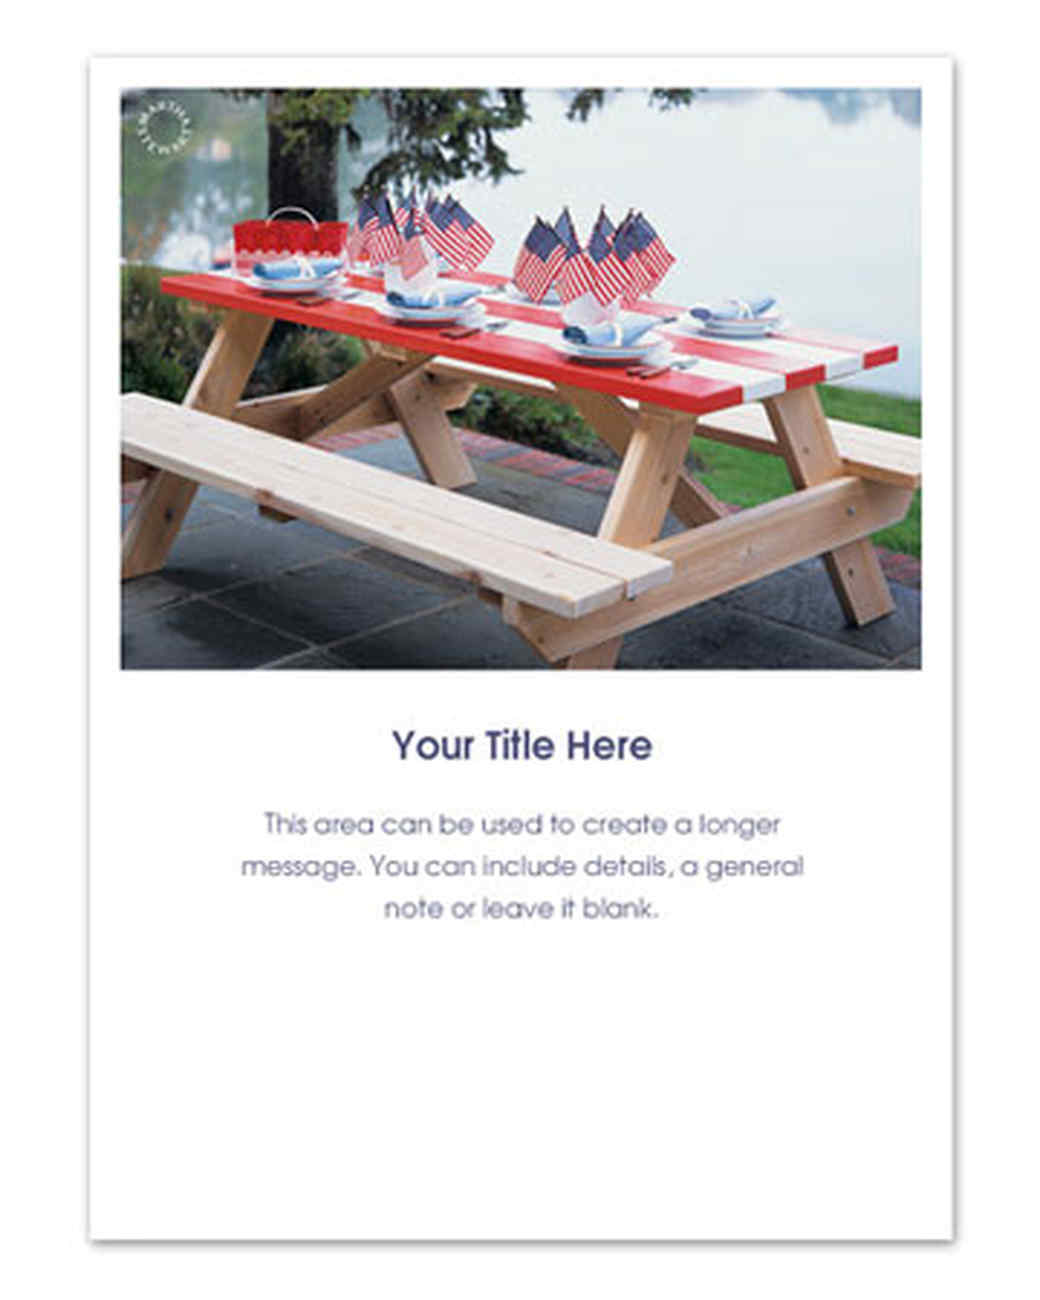 pingg-summer-striped-picnic-table.jpg